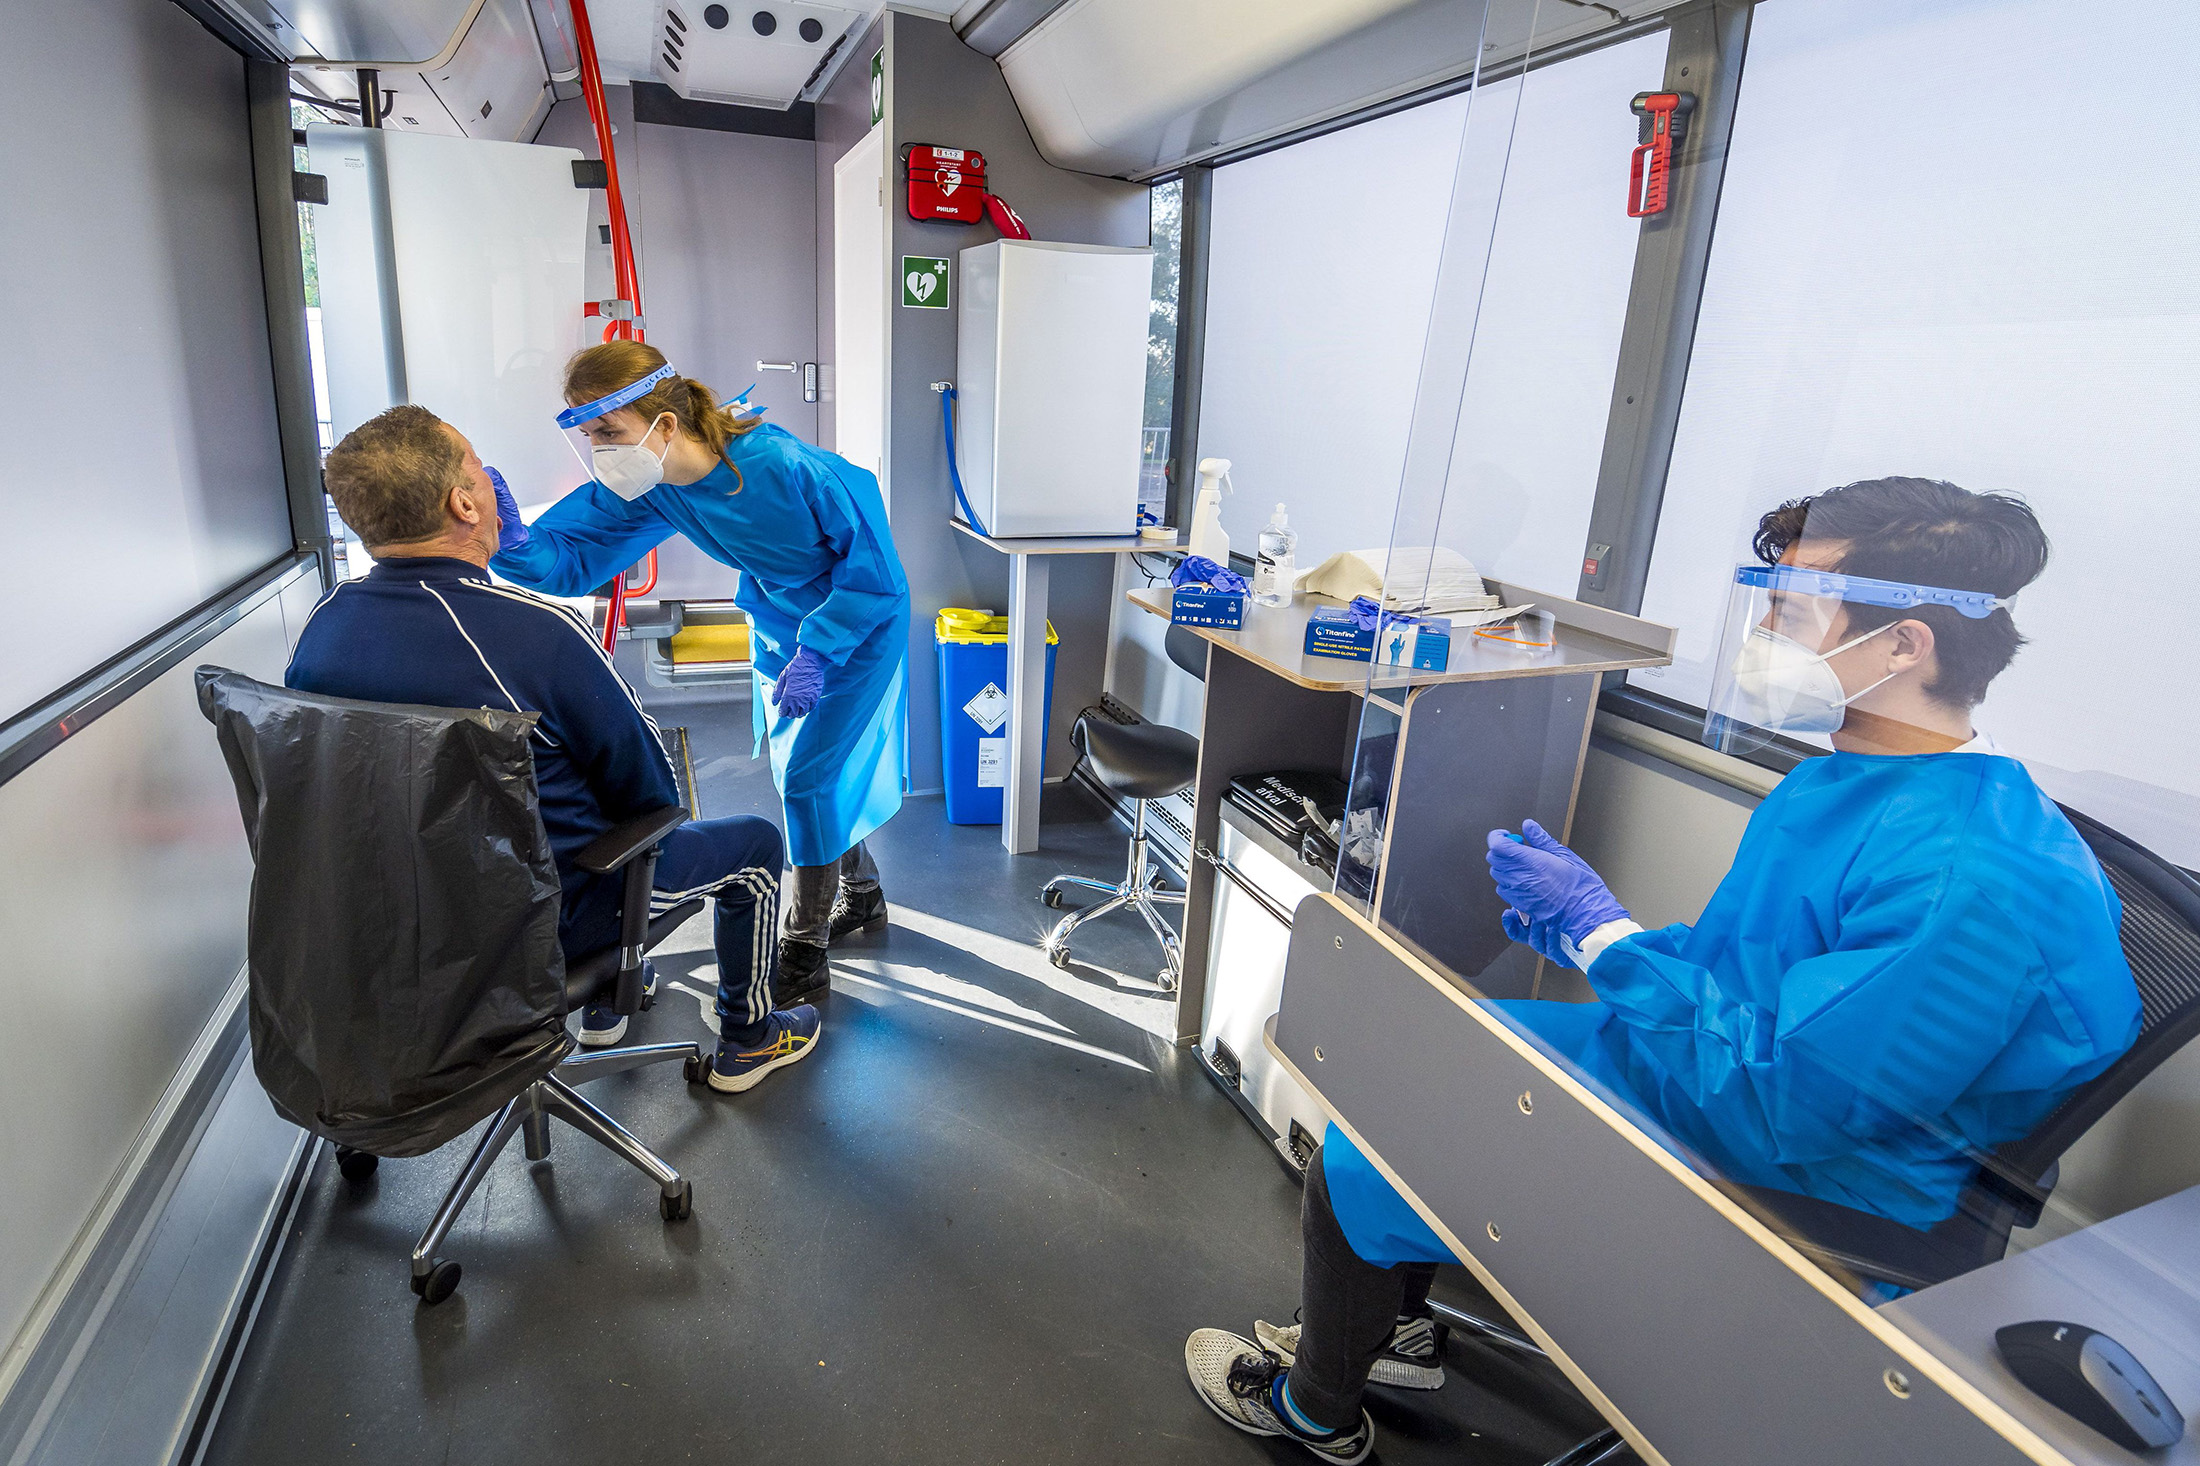 A health worker conducts a swab test on a bus converted into a mobile Covid-19 (coronavirus) test lab, in Hillegom, the Netherlands, on November 9.